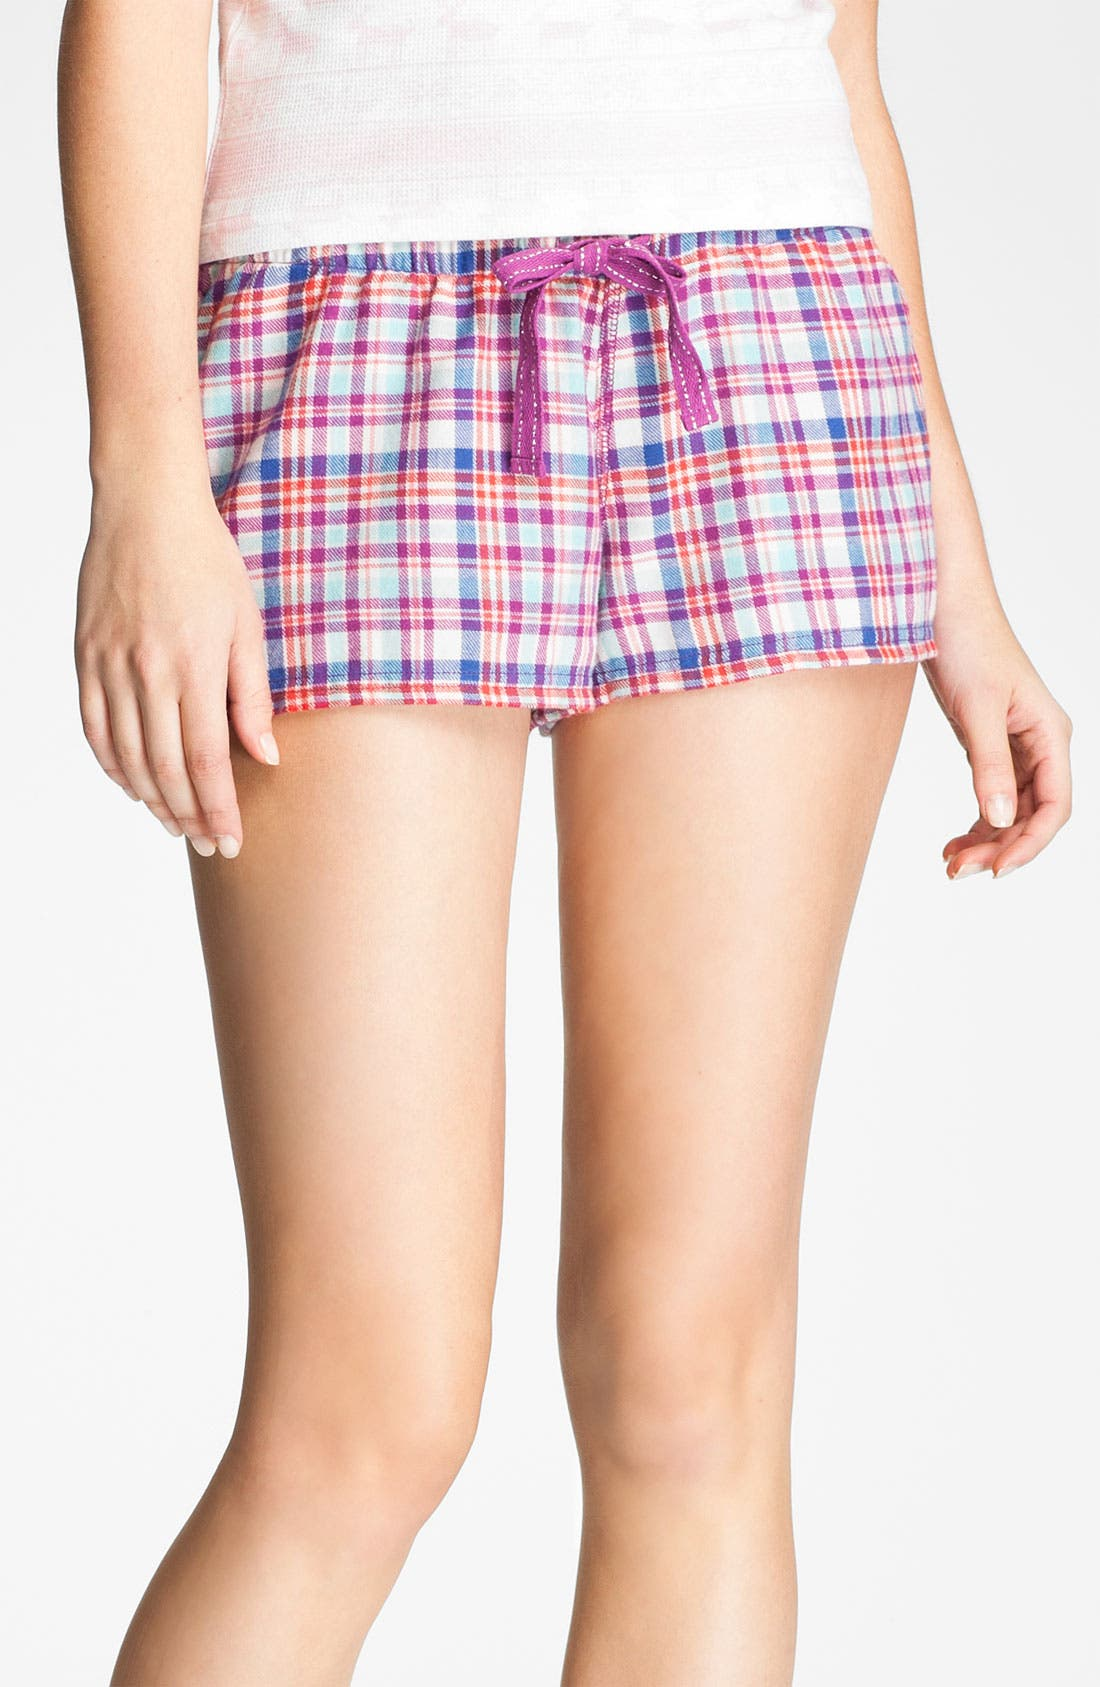 Alternate Image 1 Selected - BP. 'Union' Flannel Lounge Shorts (Juniors)